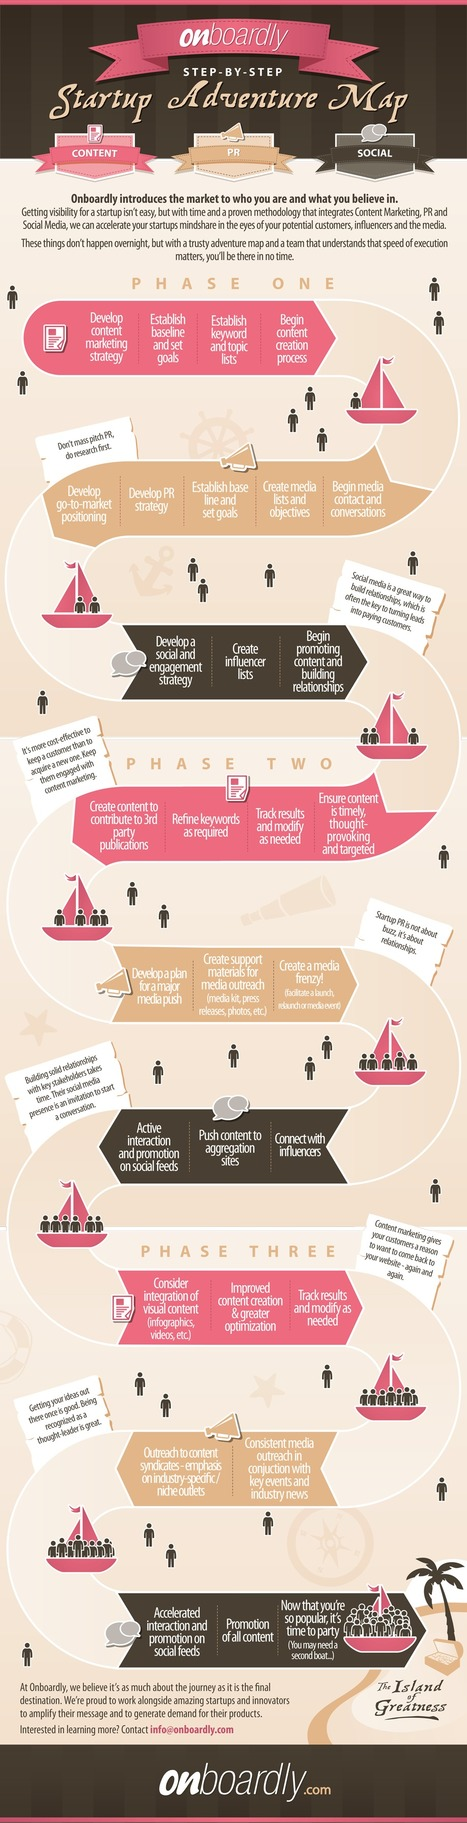 Steps On How to Acquire Customers For Your Startup [INFOGRAPHIC] | | Entrepreneurship | Scoop.it